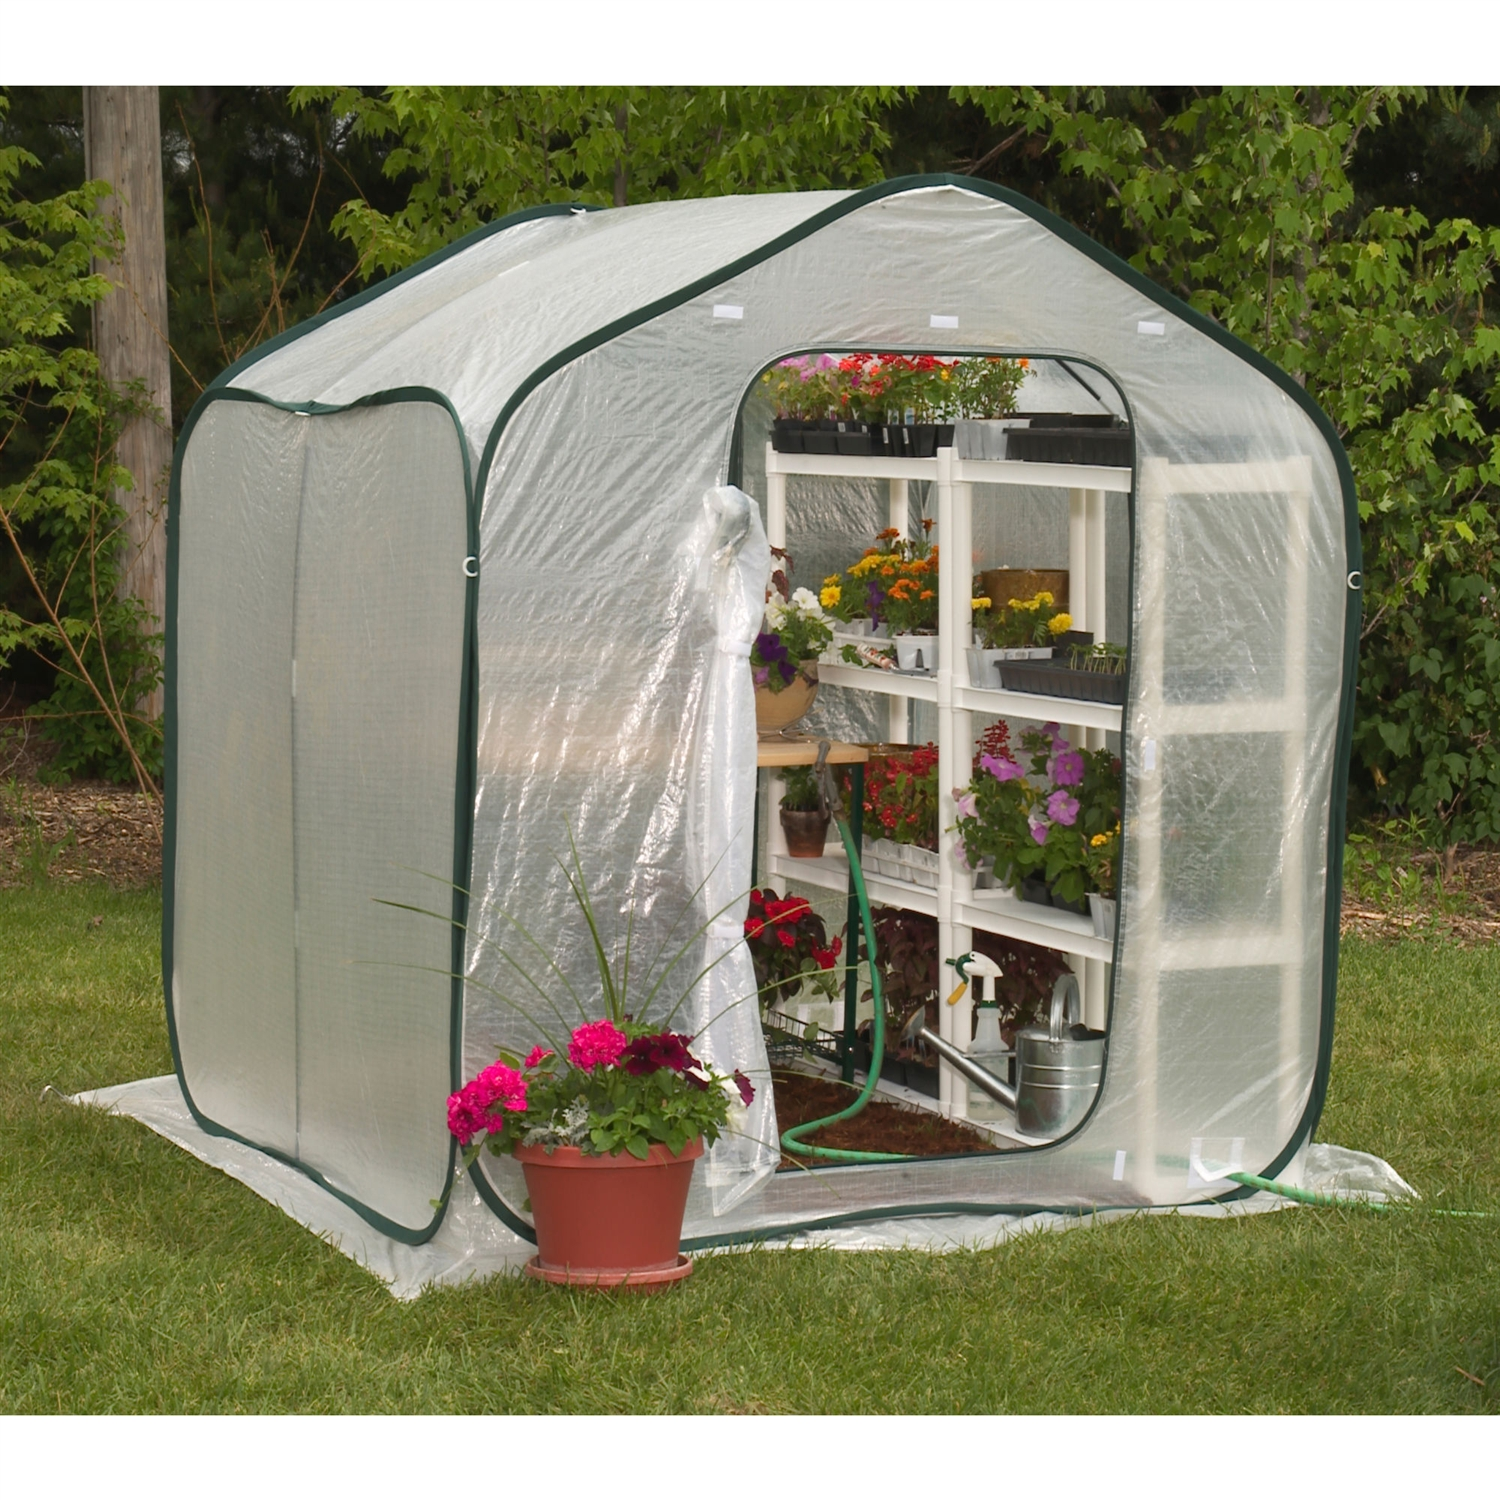 Spring Gardener Flower-House Lightweight Greenhouse (6' x 6'), WFSHG128351 : The Spring-House is perfect for improving climatic conditions in all geographic locations. The greenhouse environment makes it easier to keep your plants green. Now your plants can bloom earlier with a head start on the Spring and Summer months and you can garden year-round. The SpringHouse design is compact and lightweight for easy transport, setup and take down. Only minimal assembly is required. Two screened doors double as vents to provide optimum air circulation. All Flower-House greenhouses are constructed with the incredibly durable Grow-Tec material. Grow-Tec is UV resistant, weatherproof and features rip stop protection. Four convenient accesses for water hose or power cord; Comes with instruction manual and greenhouse guide; Ground stakes, tie-downs, shade cover, and carry pack included. Shelves and plants not included; Night time temperatures inside your Flower-house greenhouse will drop to outside temperatures without an additional heating source; 1 year limited warranty; Please Note: Warranty is not valid until the warranty card is filled out and returned within 14 days of purchase; Built in Vents, No Foundation Needed, Portable, Lightweight.